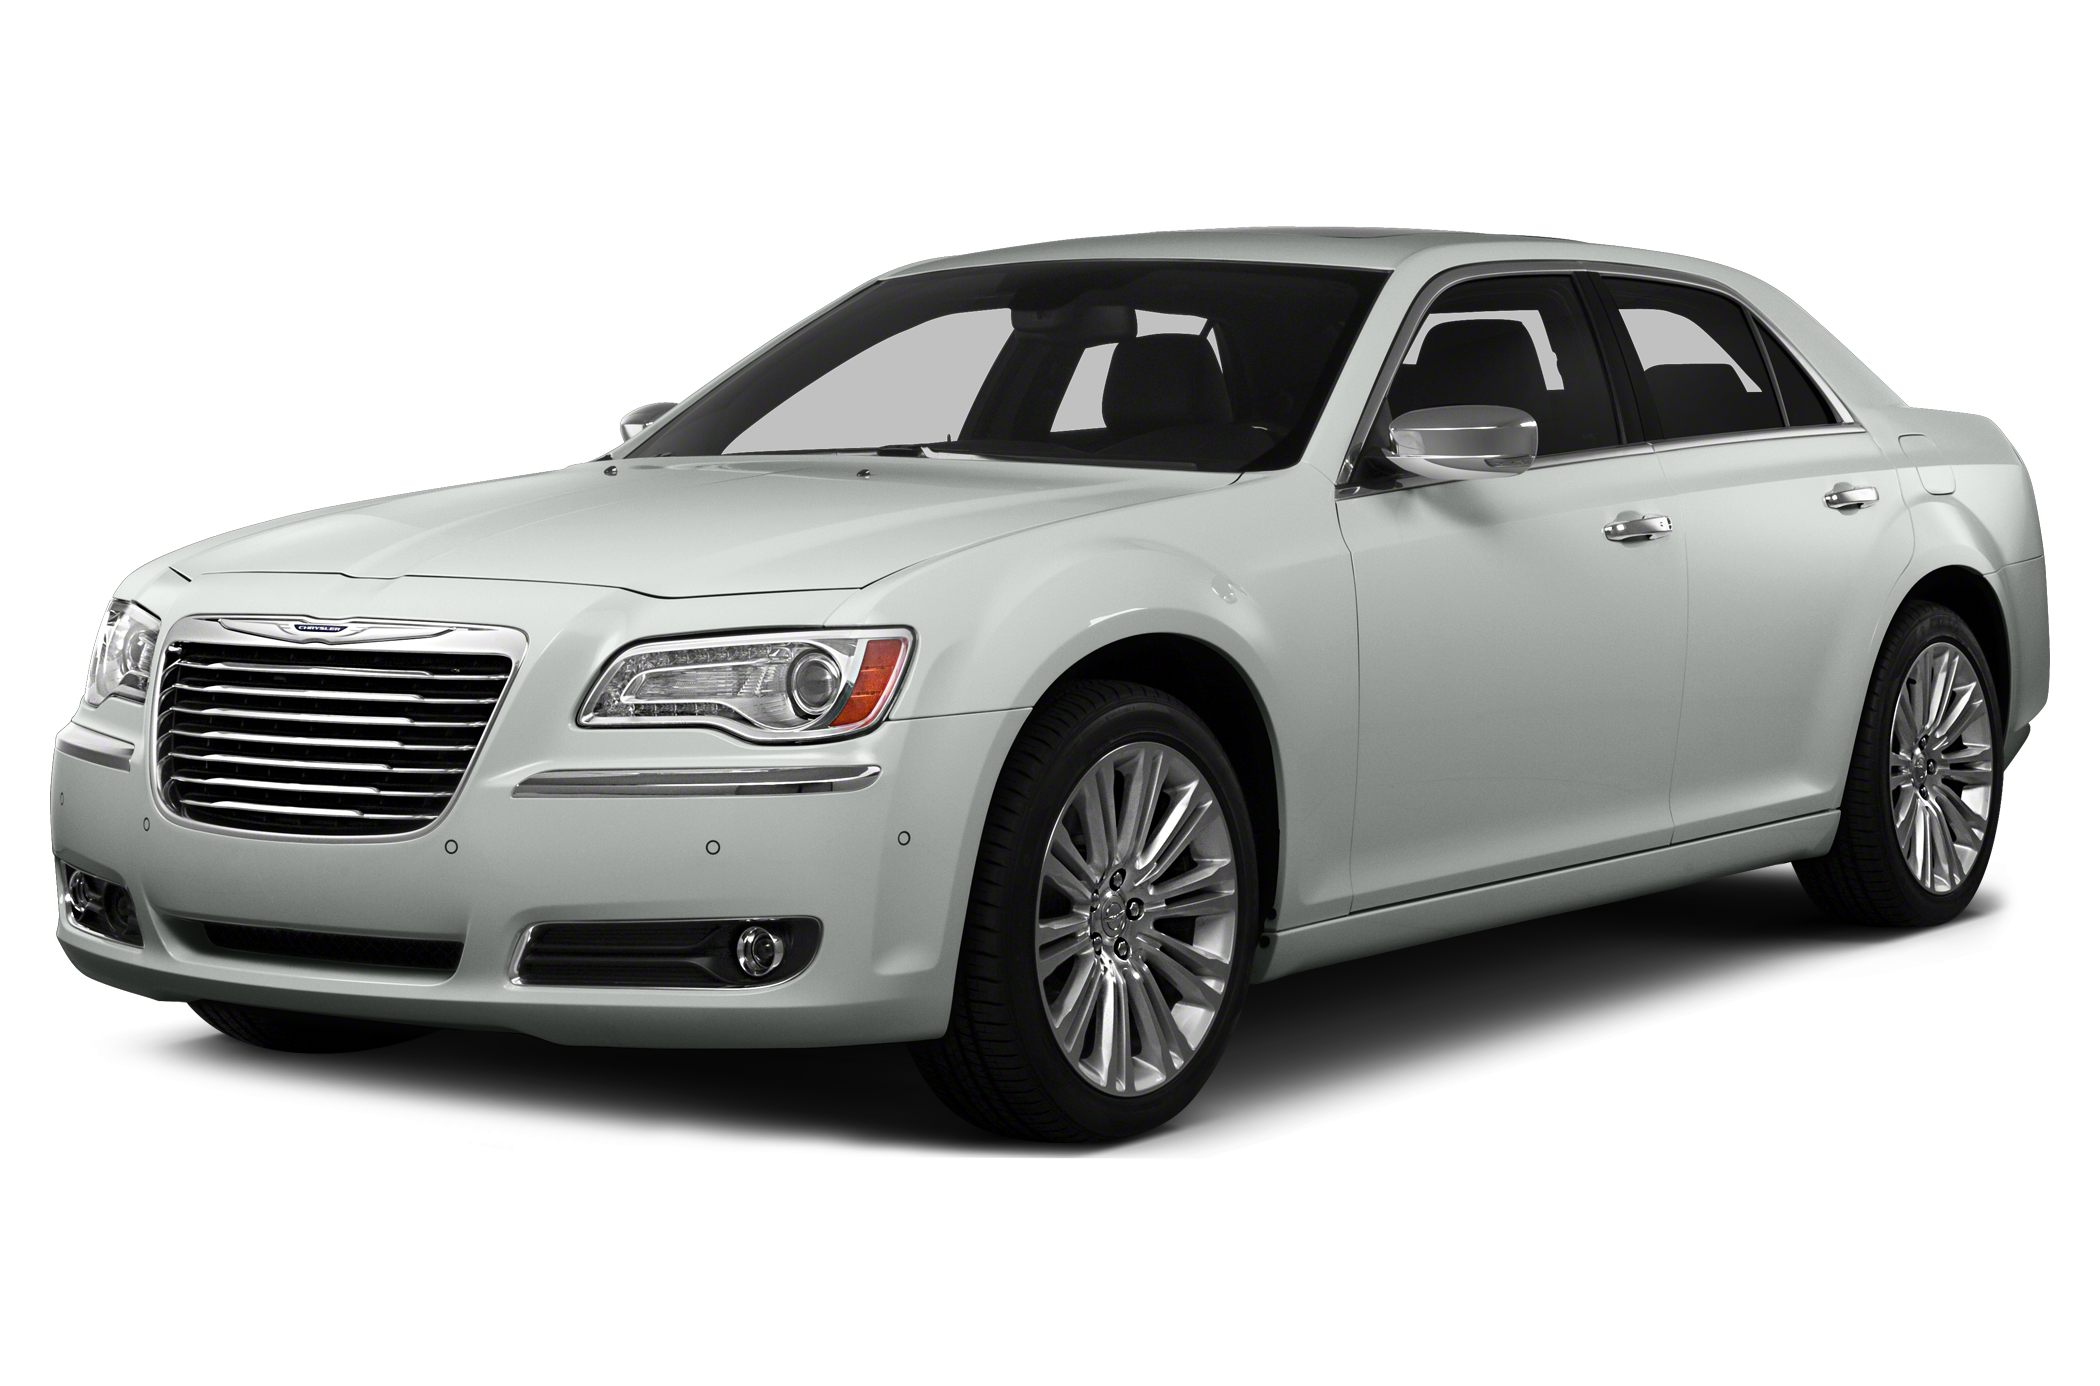 2014 Chrysler 300C Base Sedan for sale in Redford for $41,365 with 7 miles